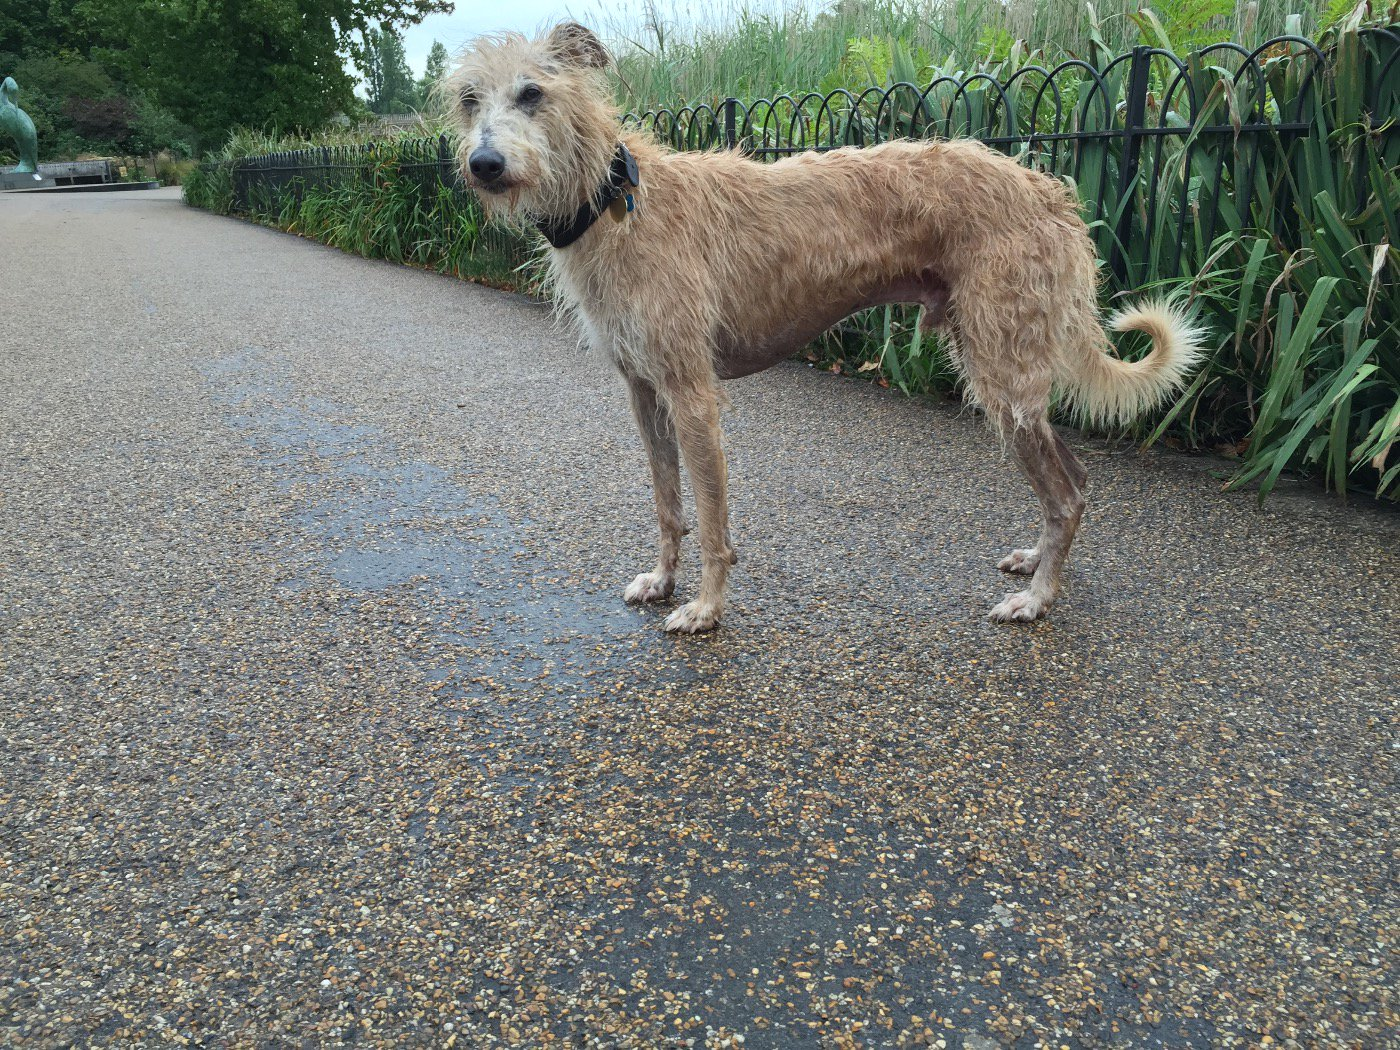 RT @spicerlife: @twitter 6 days since my Lurcher bolted. Please keep RTing perhaps someone doesn't realise he has owners who 💛 him https://…